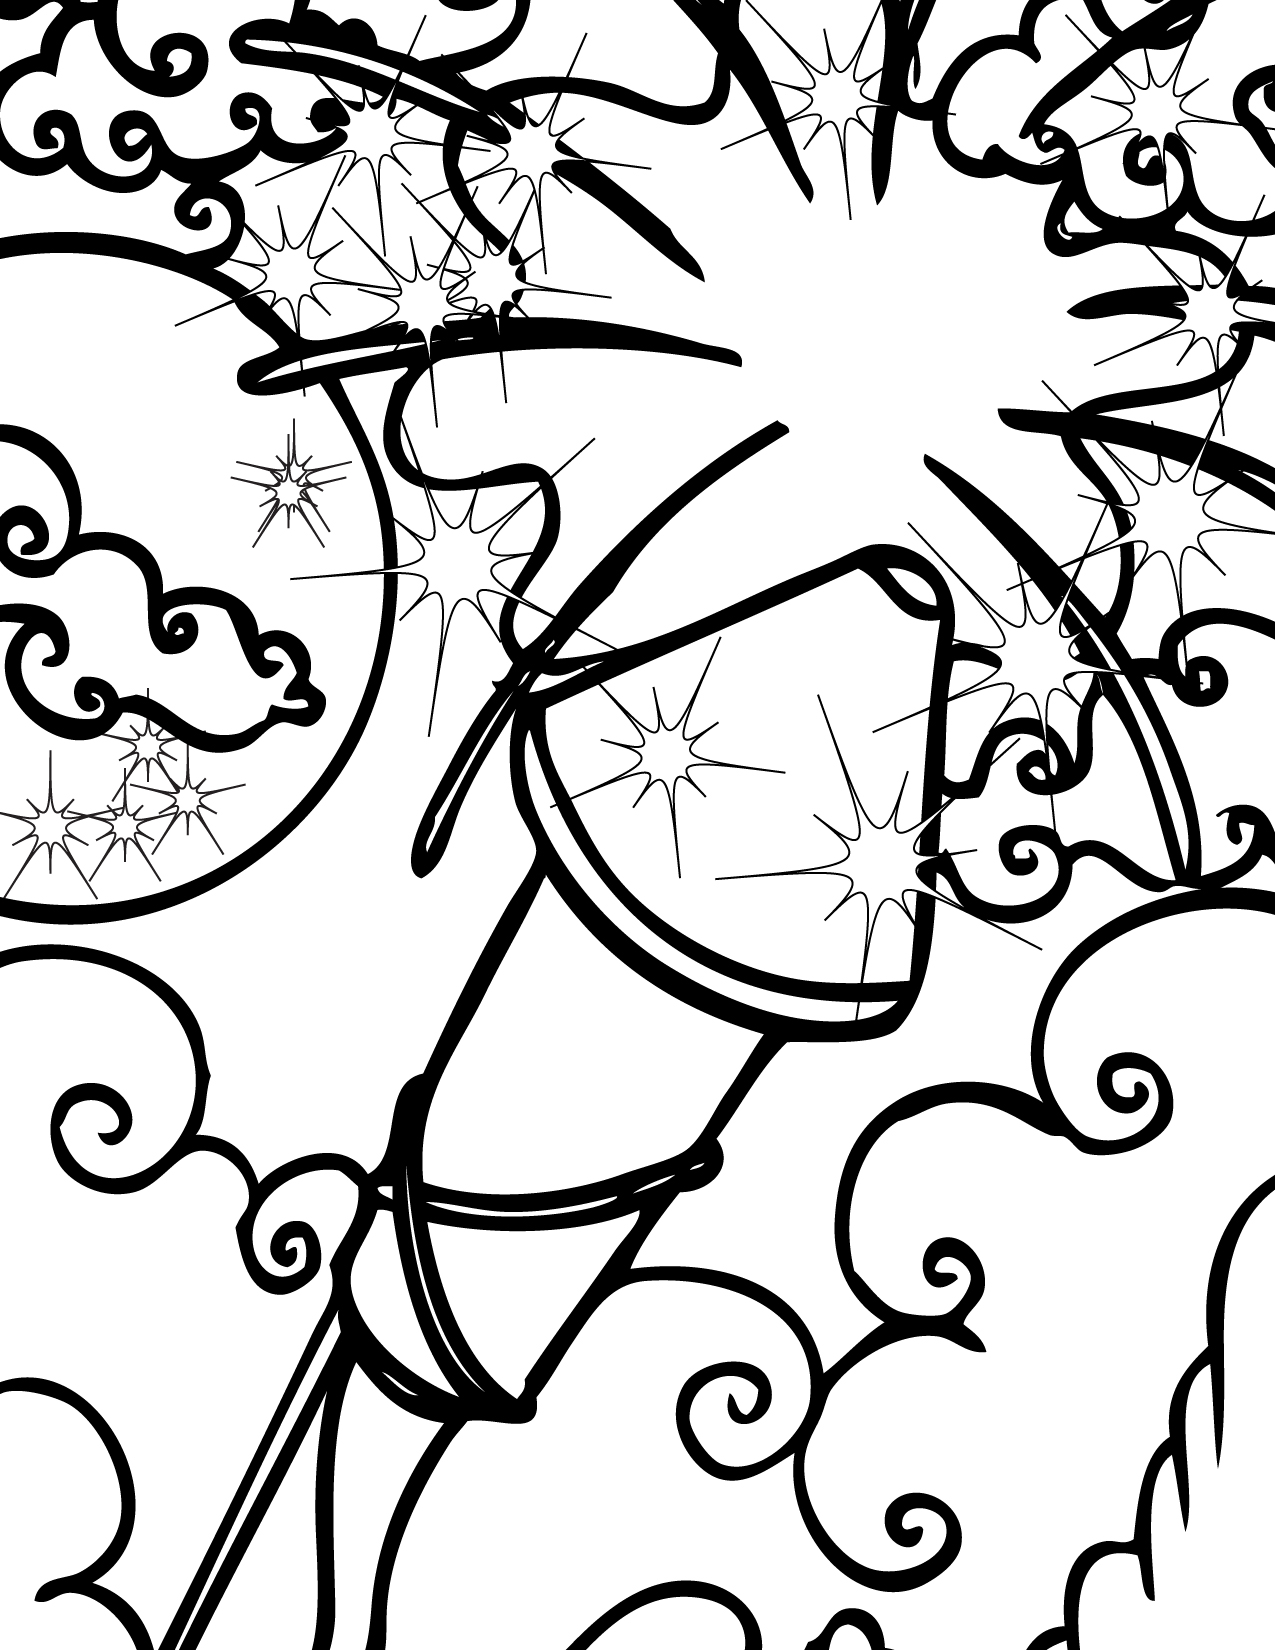 Fireworks Coloring Pages Free Printable Fireworks Coloring Pages For Kids